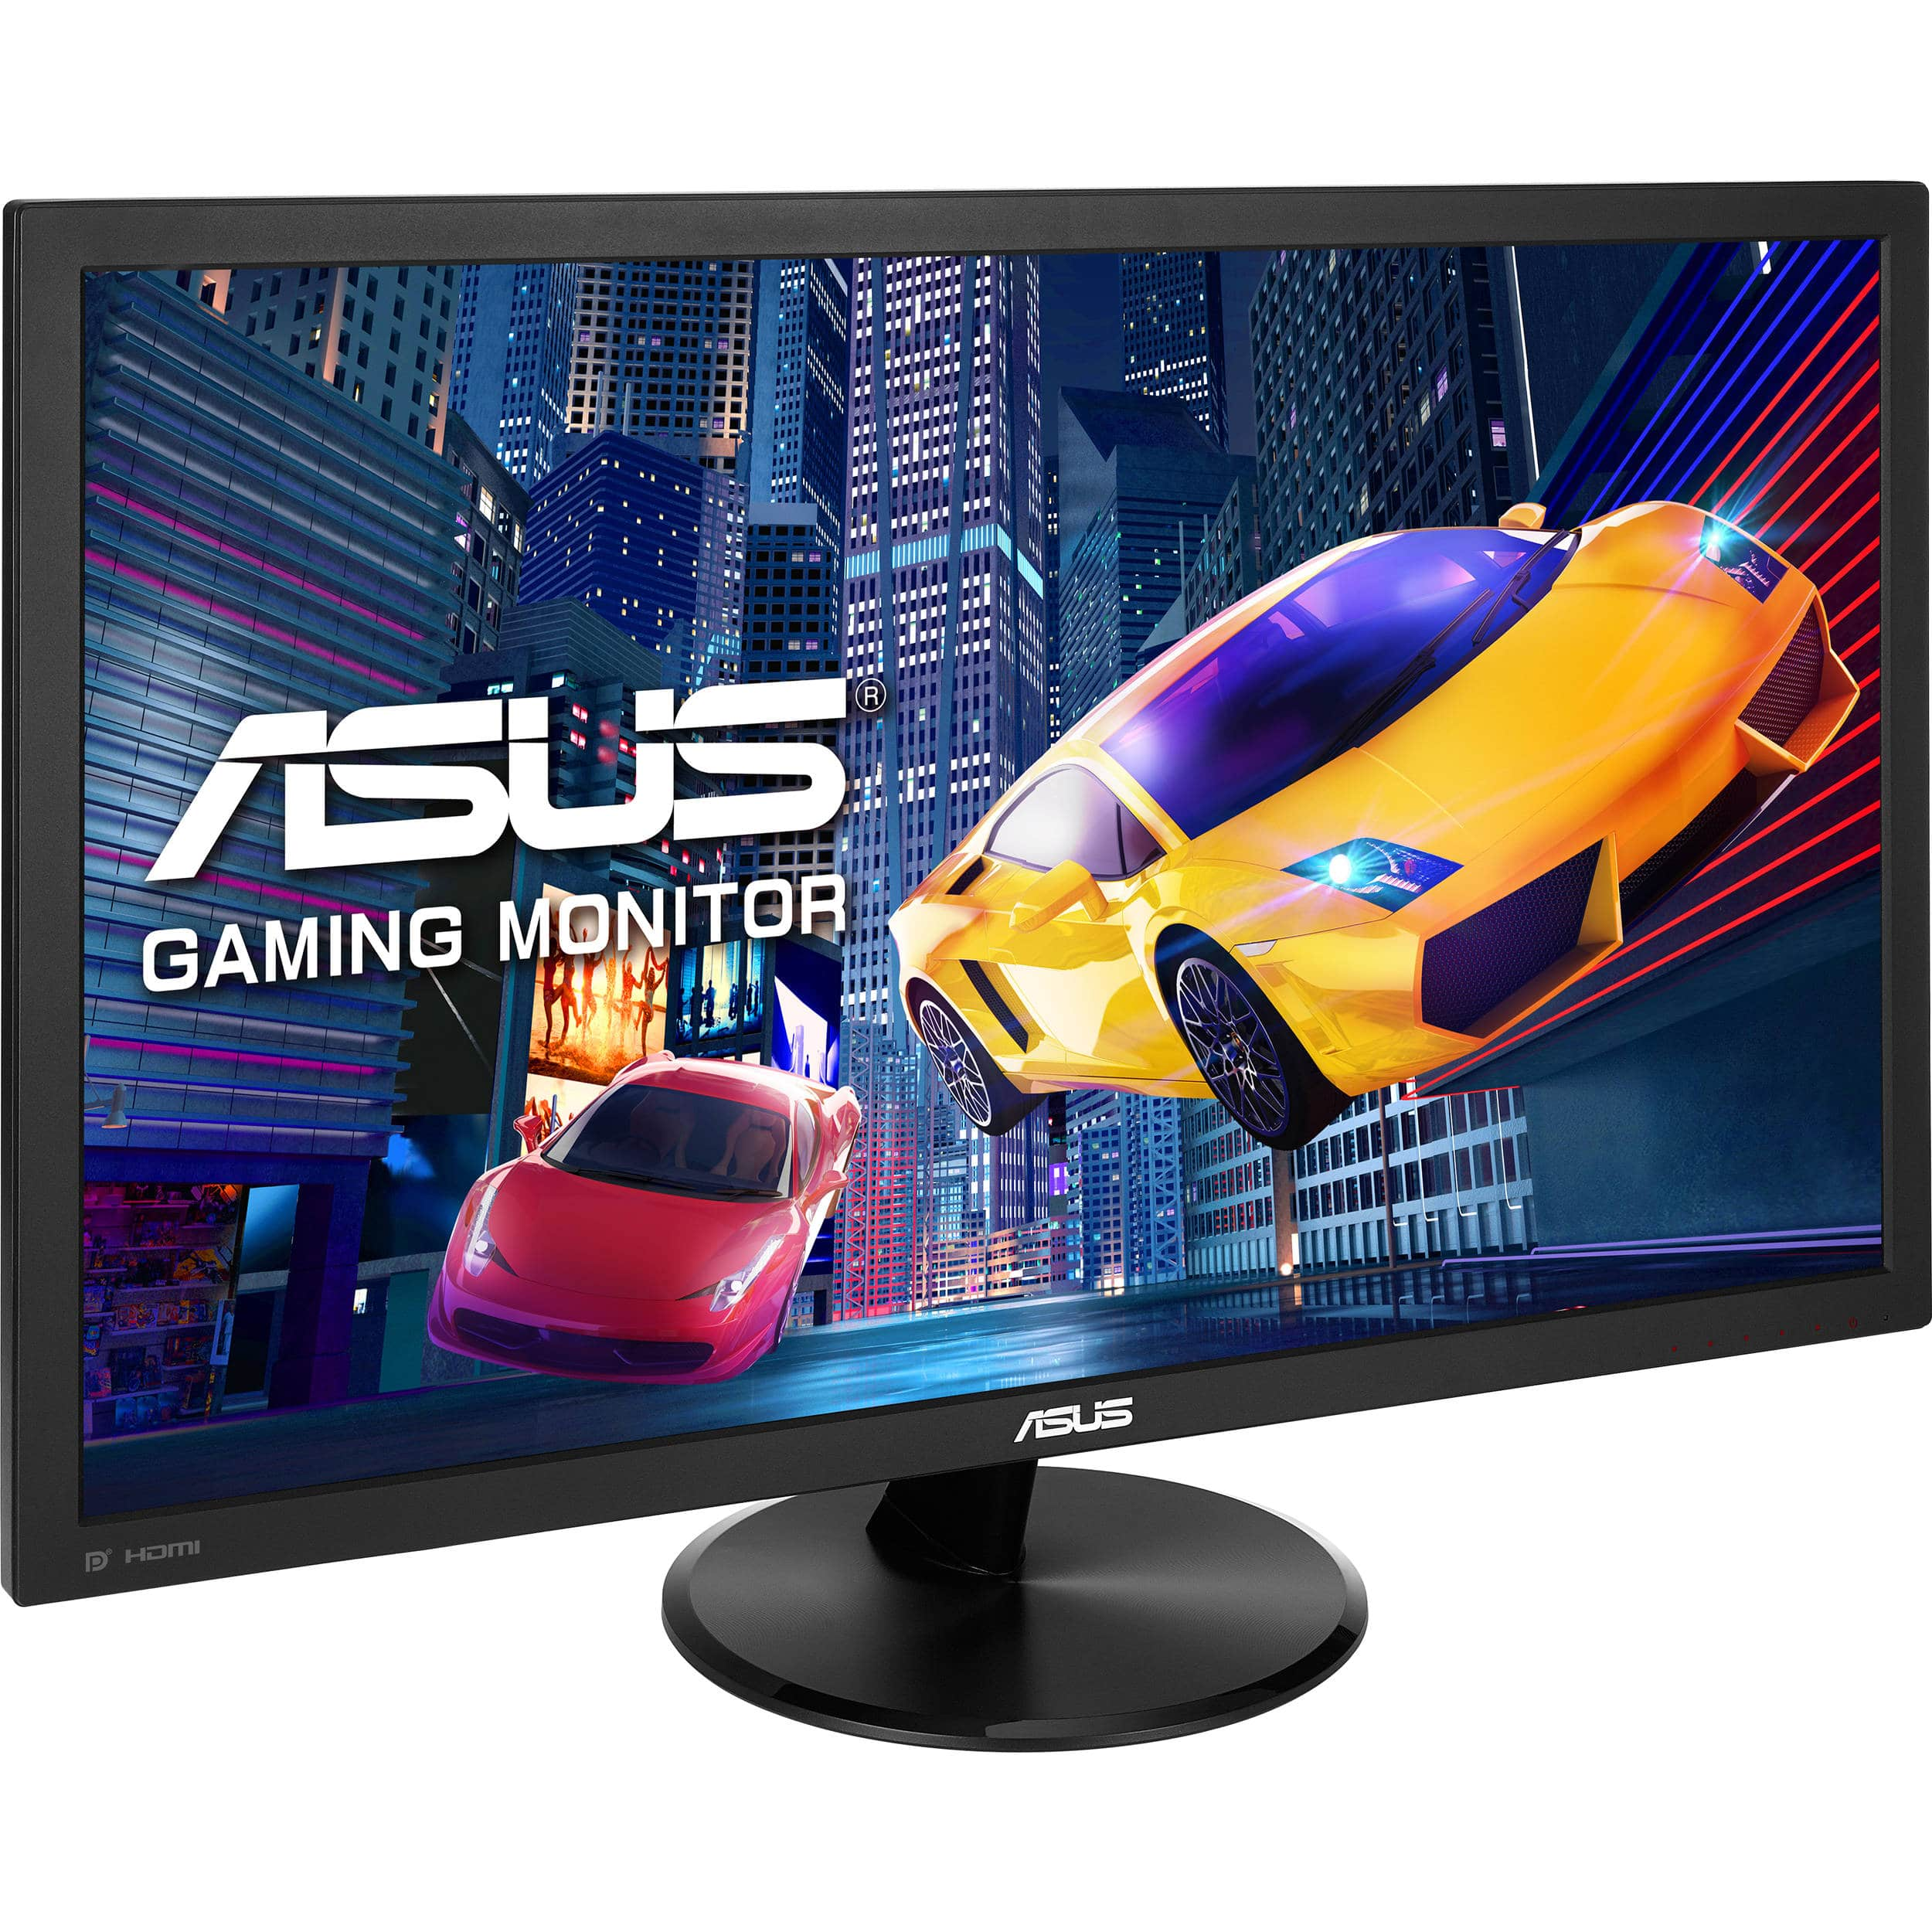 ASUS MG28UQ 28-Inch 4K UHD Gaming Monitor (4K UHD (3840x2160), FreeSync, Flicker Free, Low Blue Light, Black) | MG28UQ